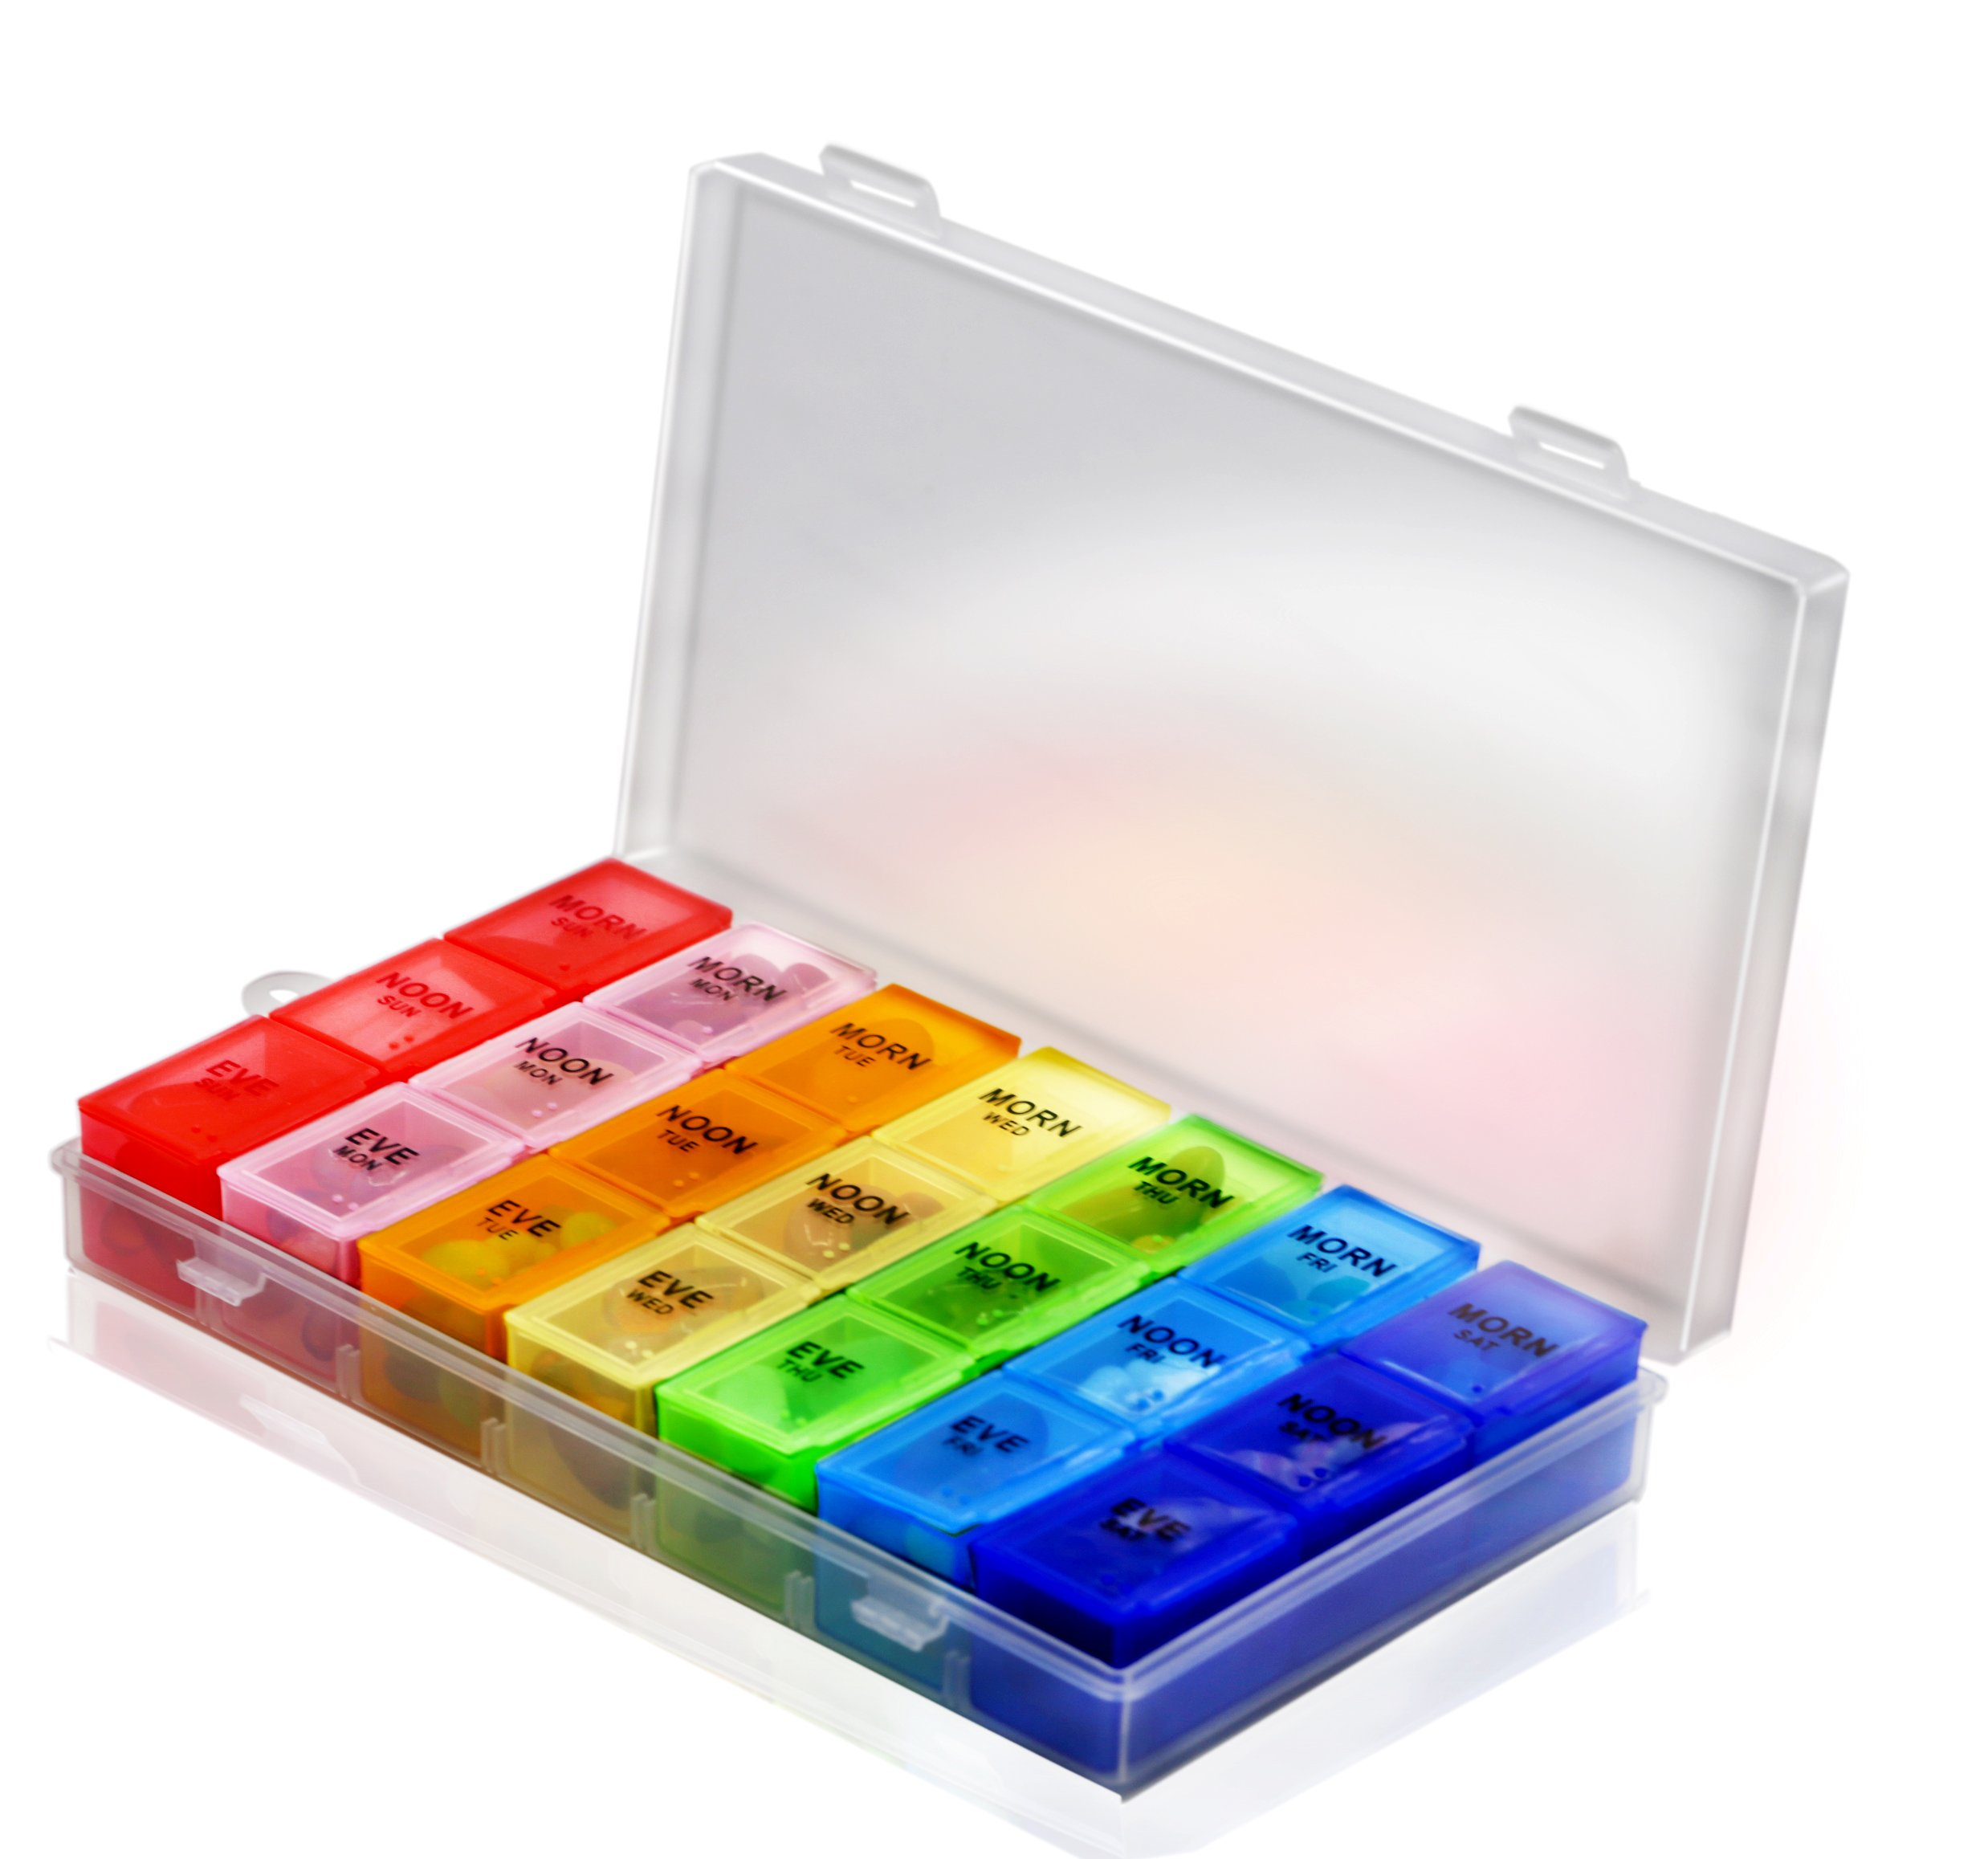 Pill Organizer Box with Snap Lids| 7-day AM/PM | Detachable Compartments for Pills, Vitamin. (Rainbow+60182) by Inspiration Industry NY (Image #2)